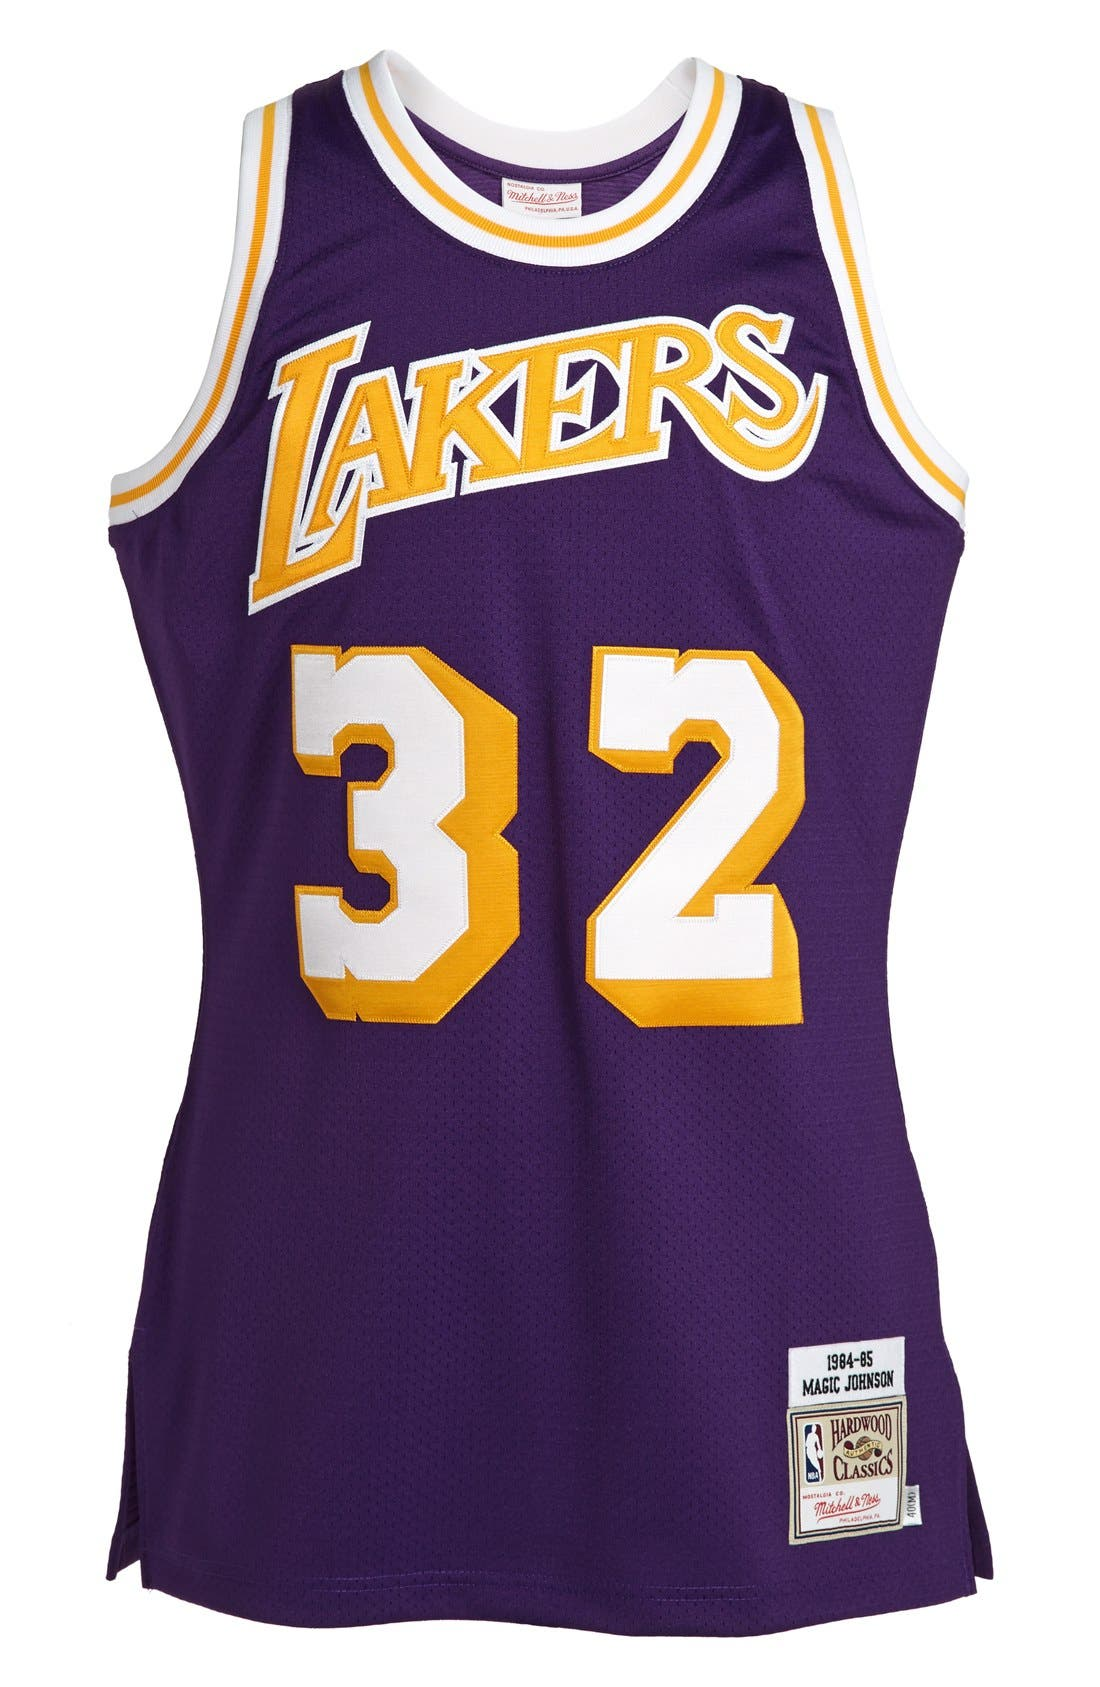 Main Image - Mitchell & Ness 'Los Angeles Lakers 1984-1985 - Magic Johnson Authentic' Basketball Jersey